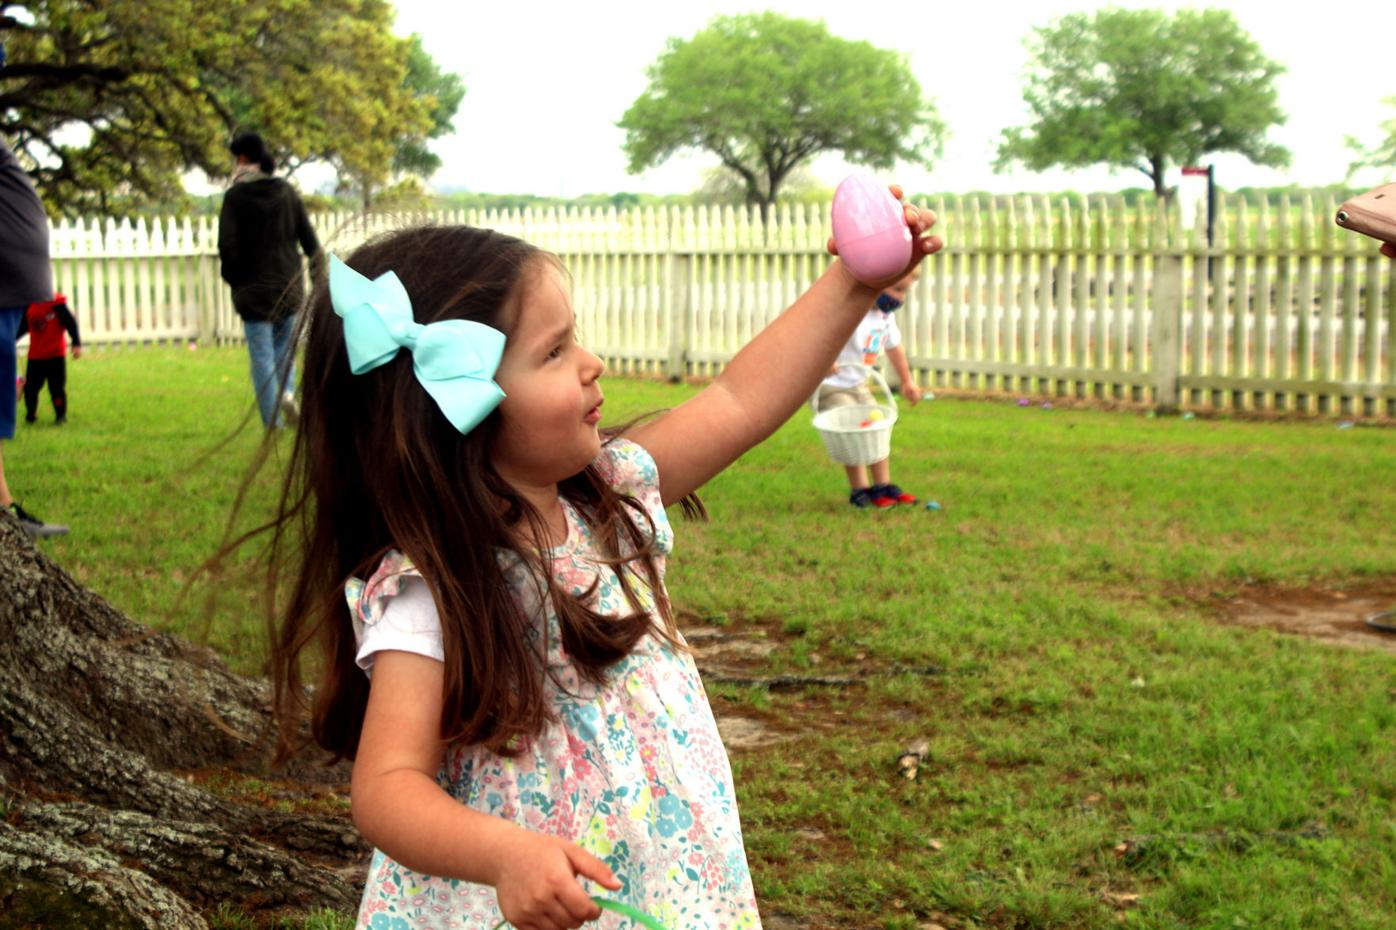 An egg hunt of epic proportions